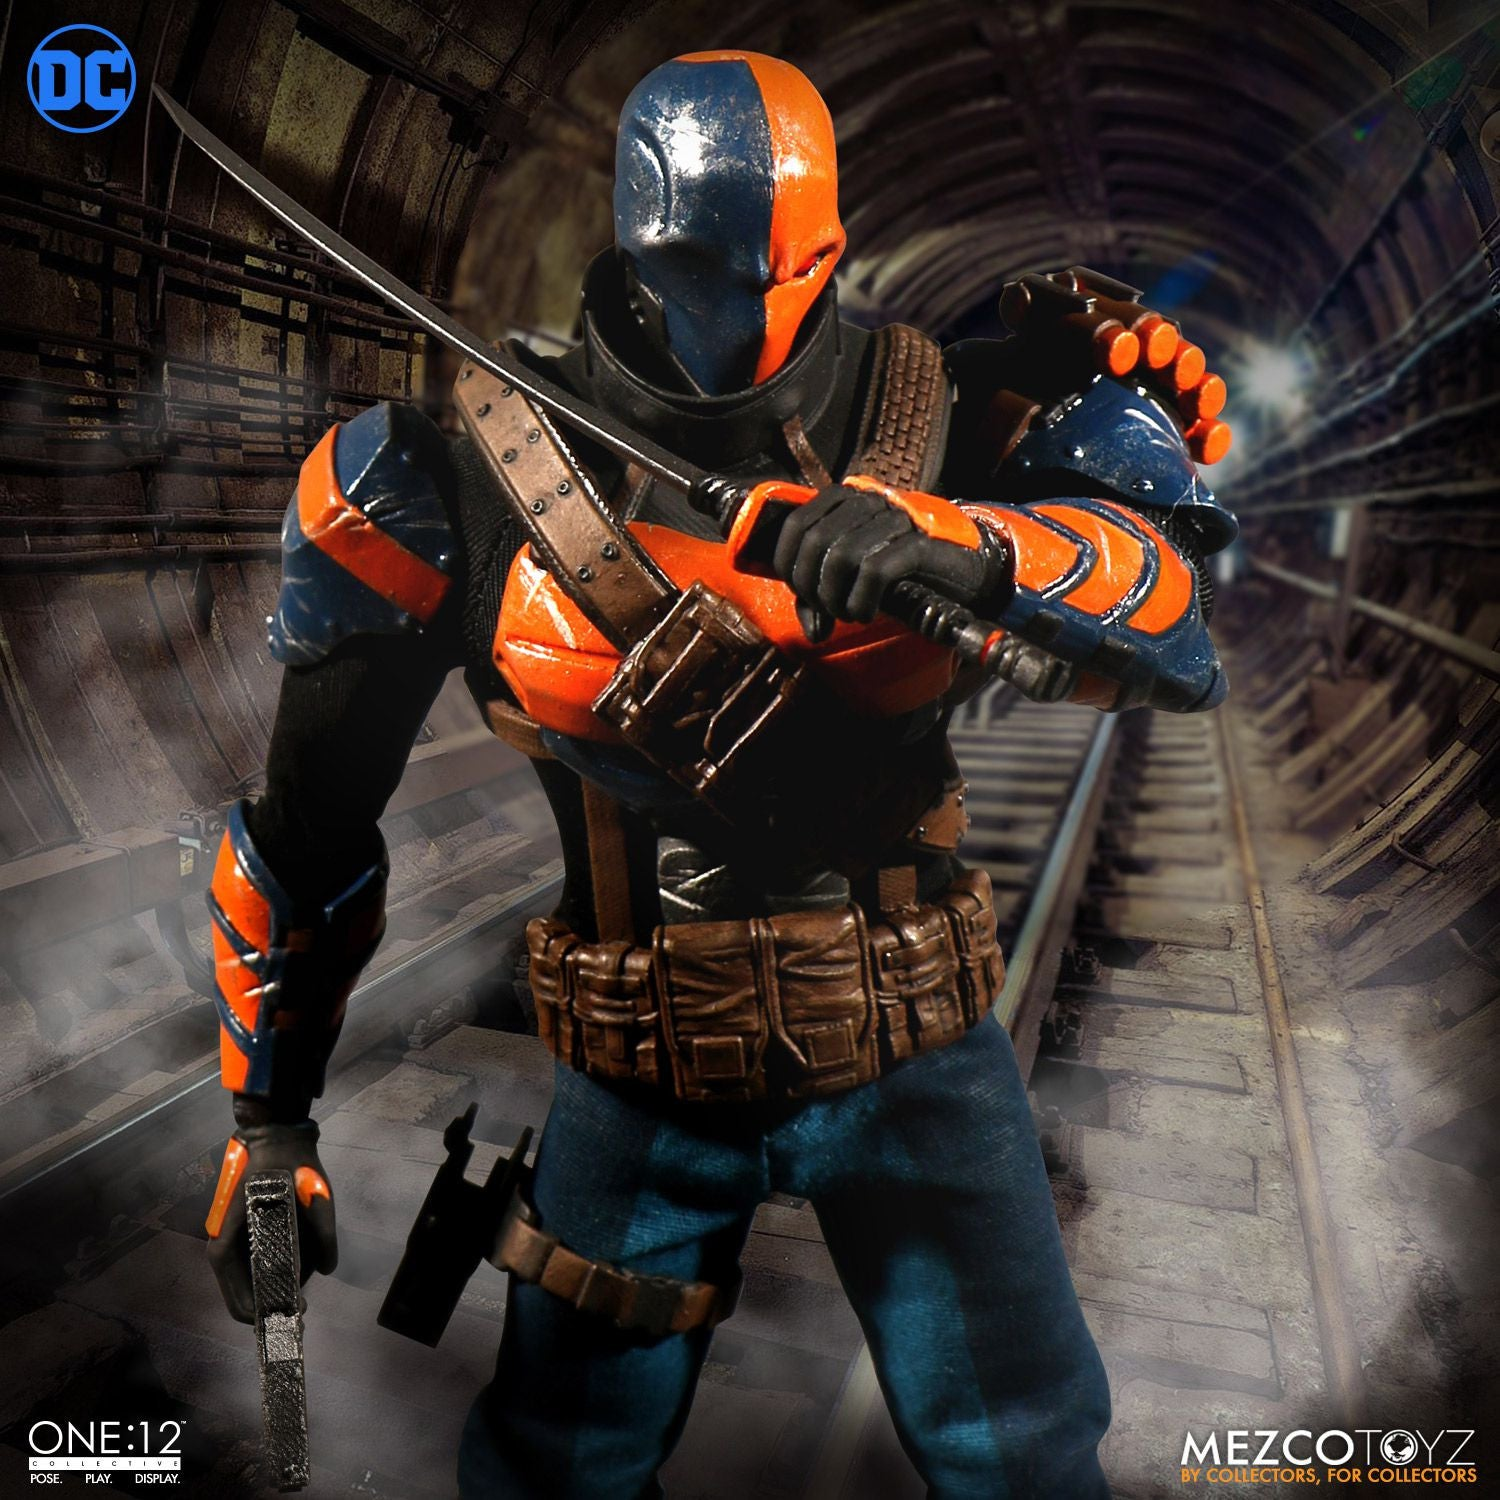 Mezco - One:12 Collective - Deathstroke - Marvelous Toys - 6